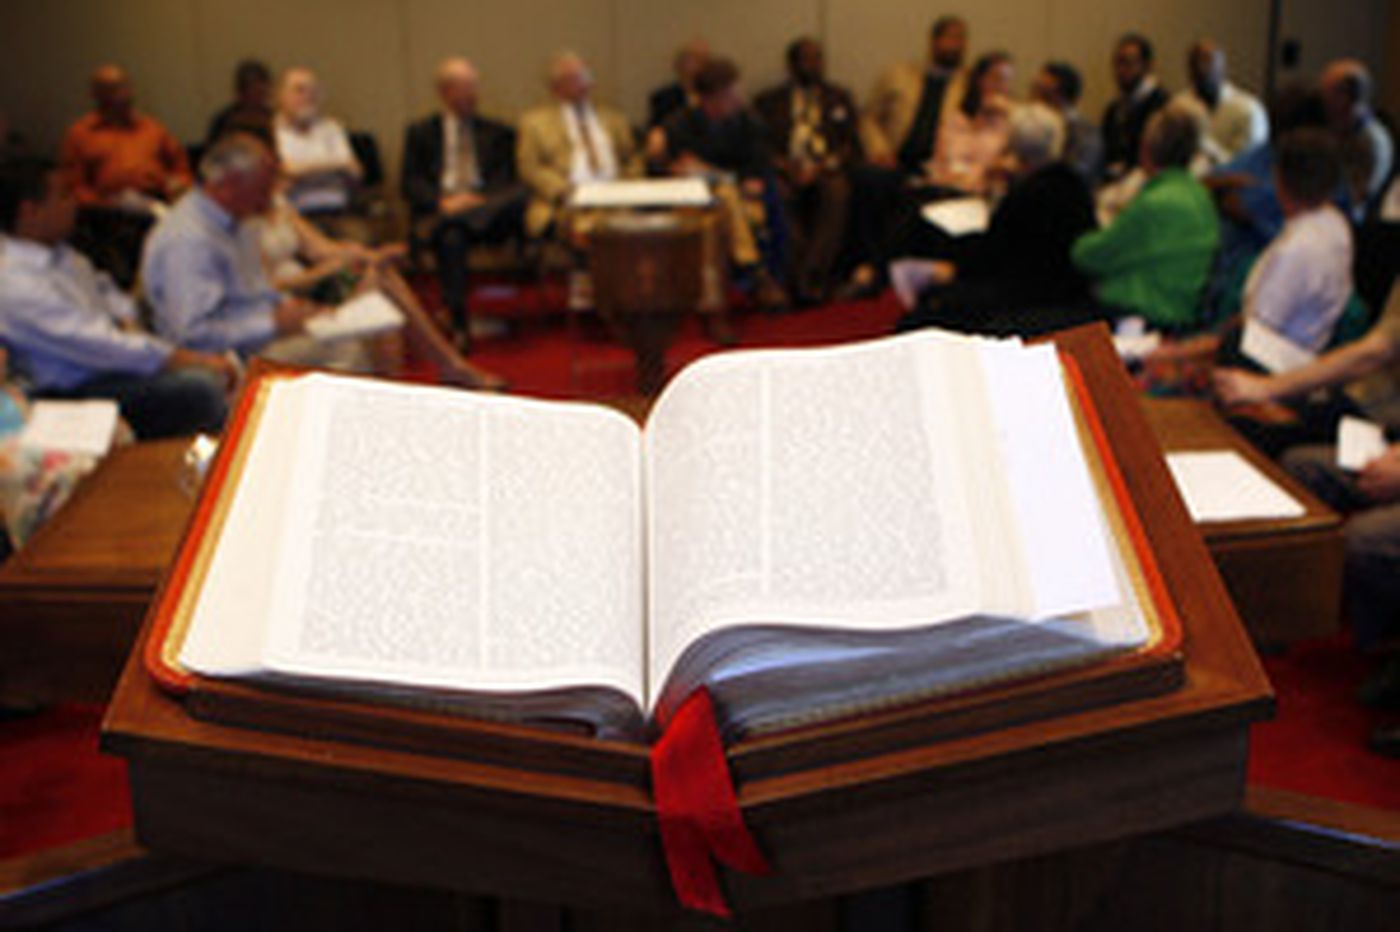 United Church of Christ to hold conversation on race